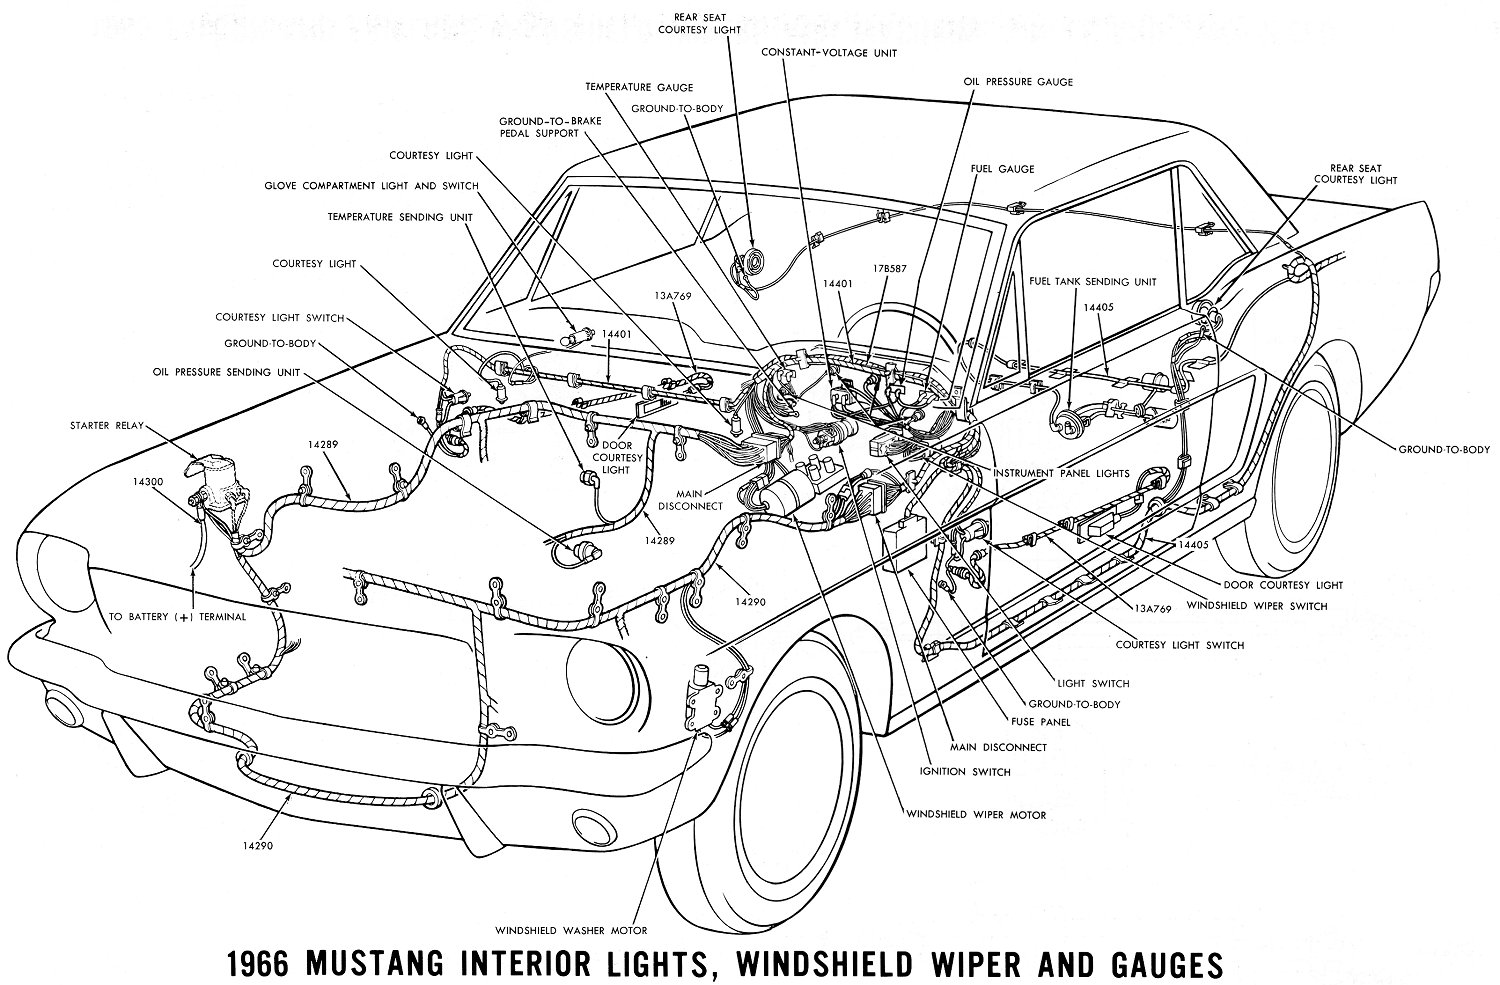 66inter 1966 mustang wiring diagrams average joe restoration 1965 mustang heater wiring diagram at cos-gaming.co